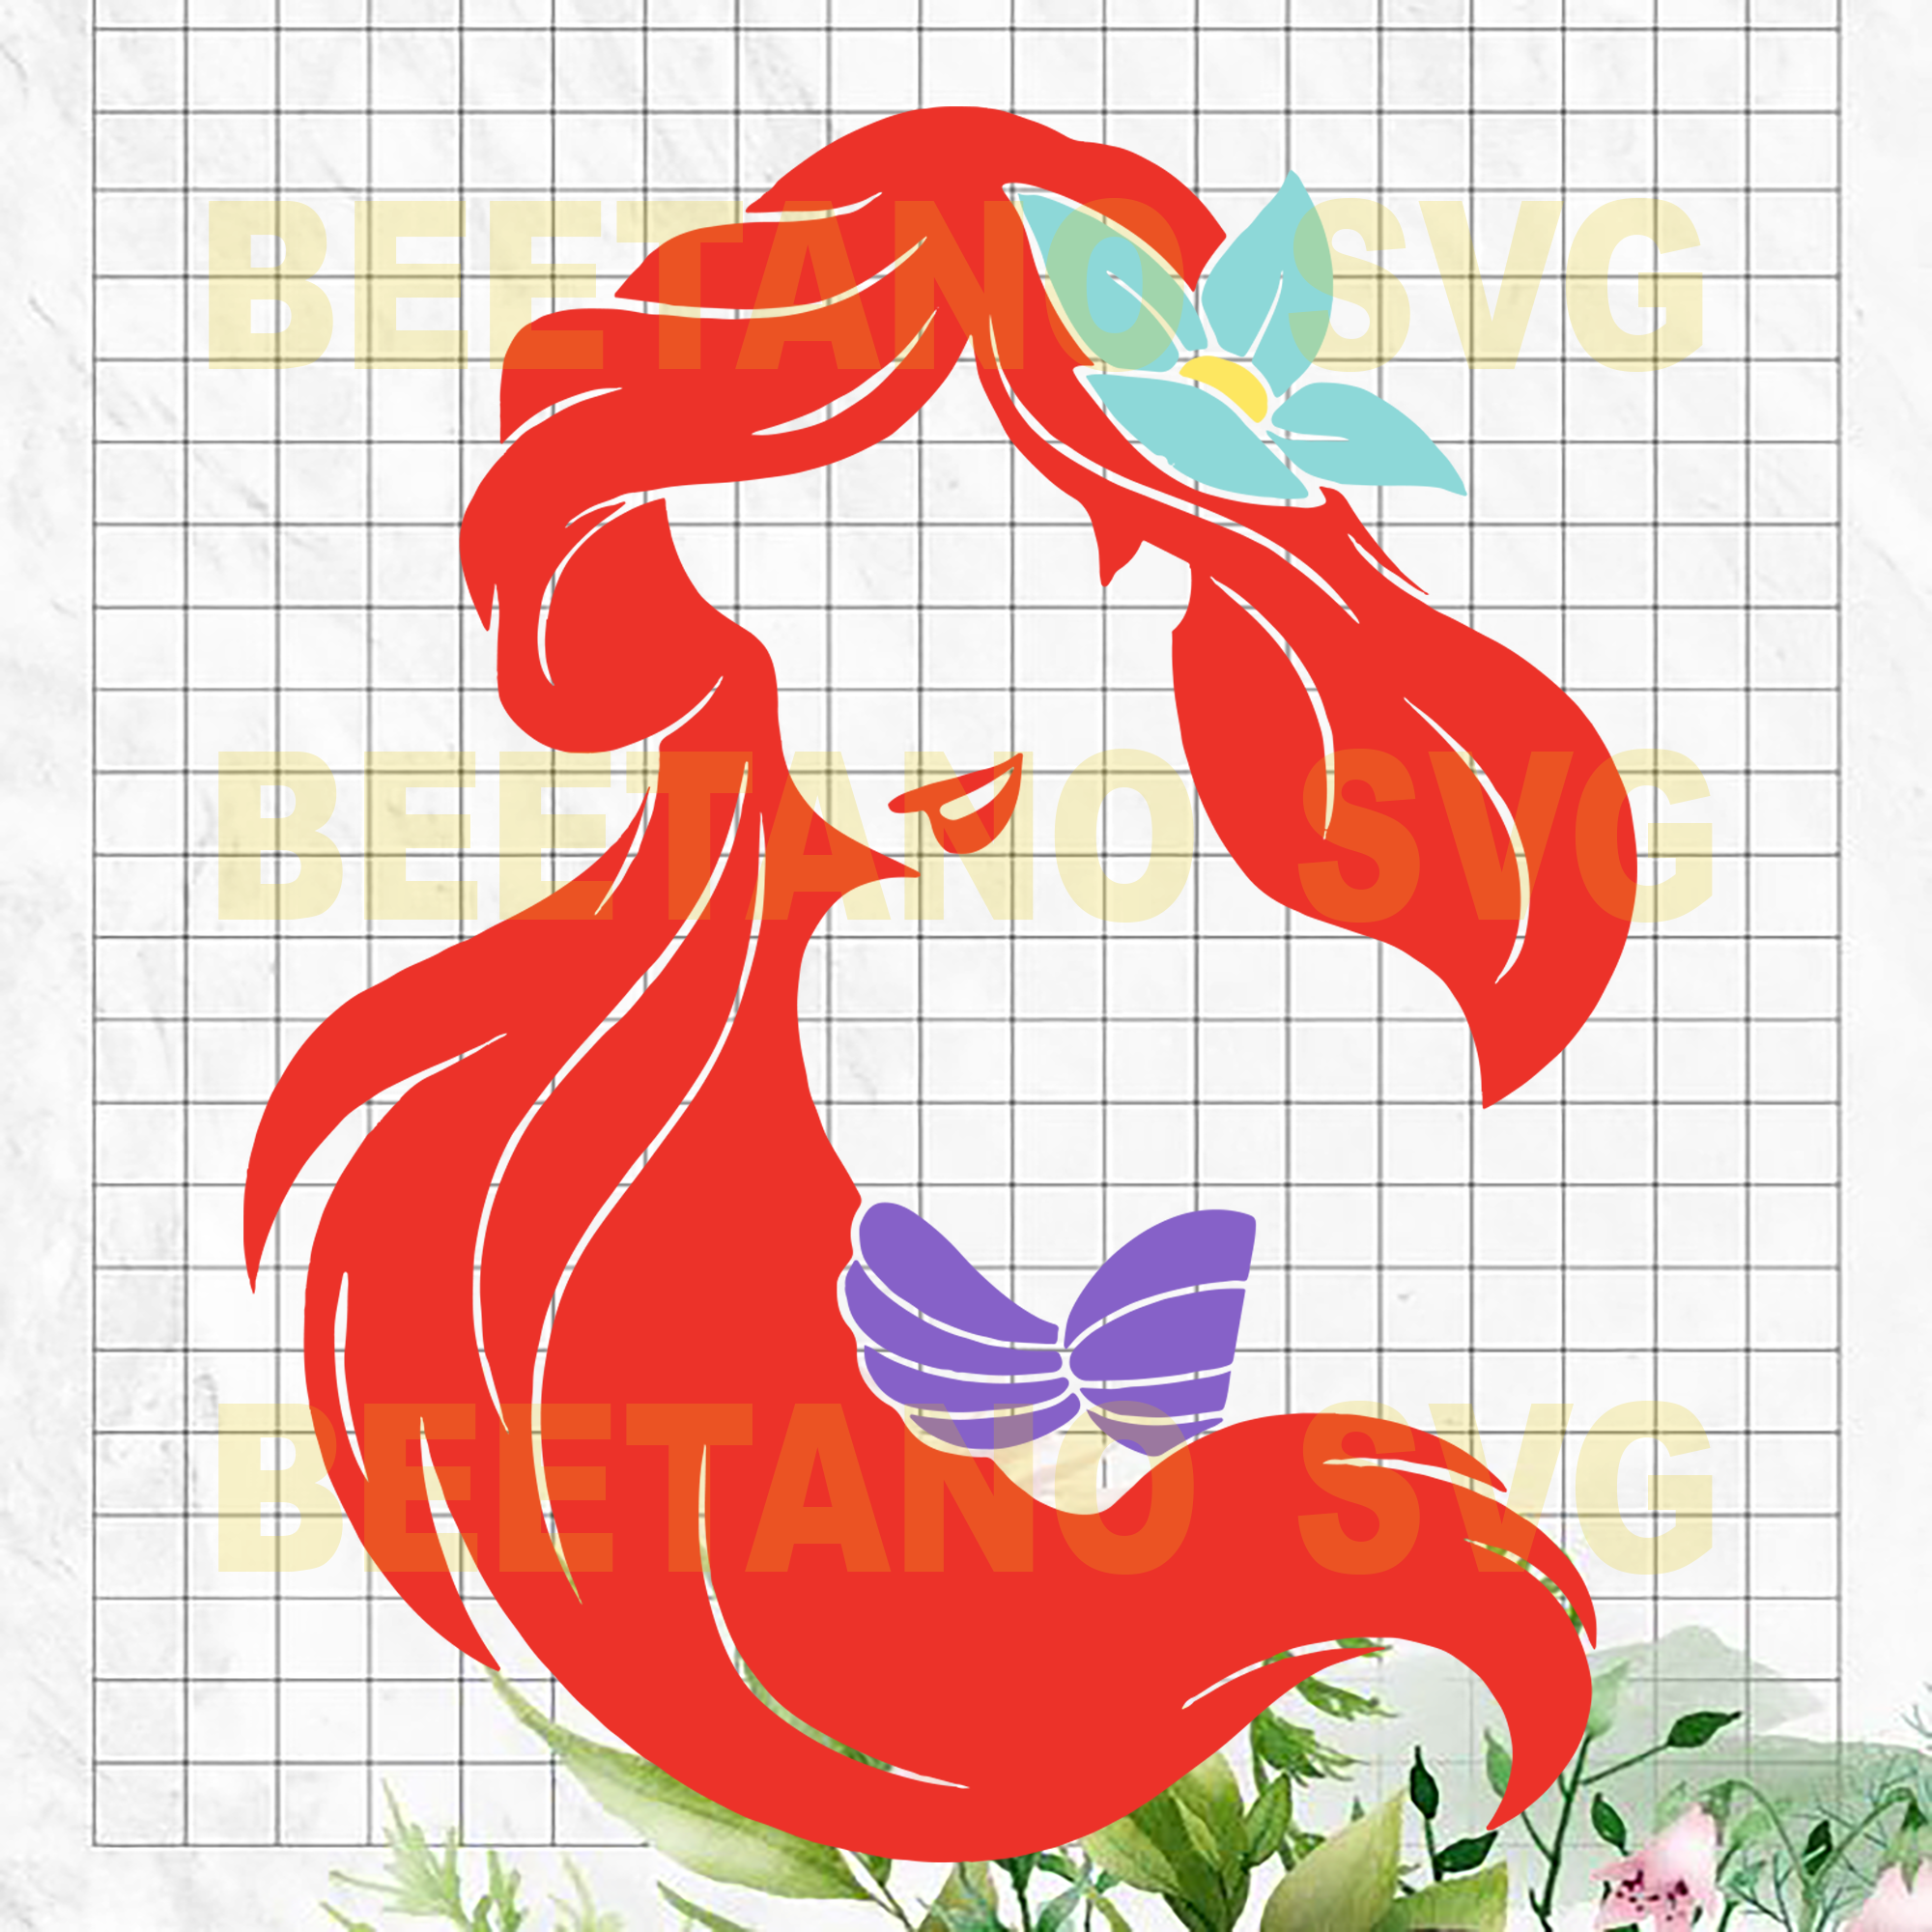 Little Mermaid Ariel SVG, Little Mermaid Clipart, Disney Character, Little Mermaid Ariel Cutting Files For Cricut, SVG, DXF, EPS, PNG Instant Download